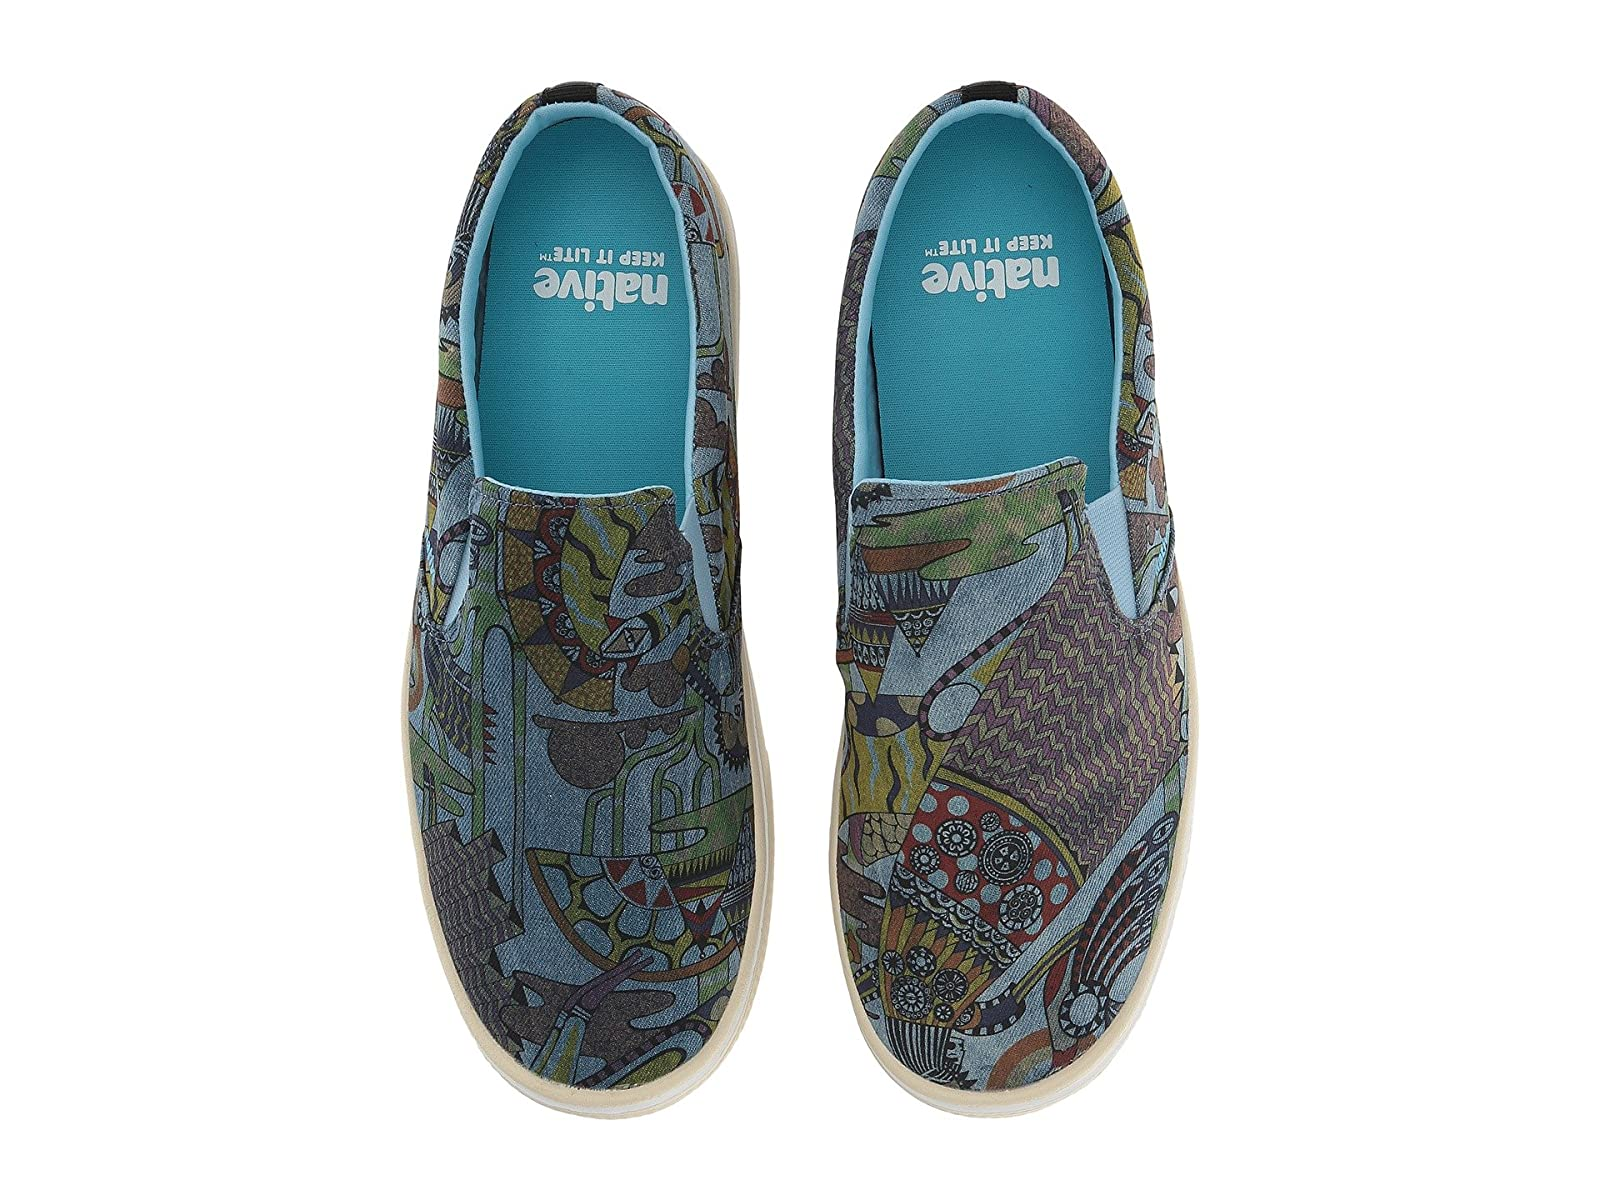 Native Shoes Miles Denim PrintCheap and distinctive eye-catching shoes